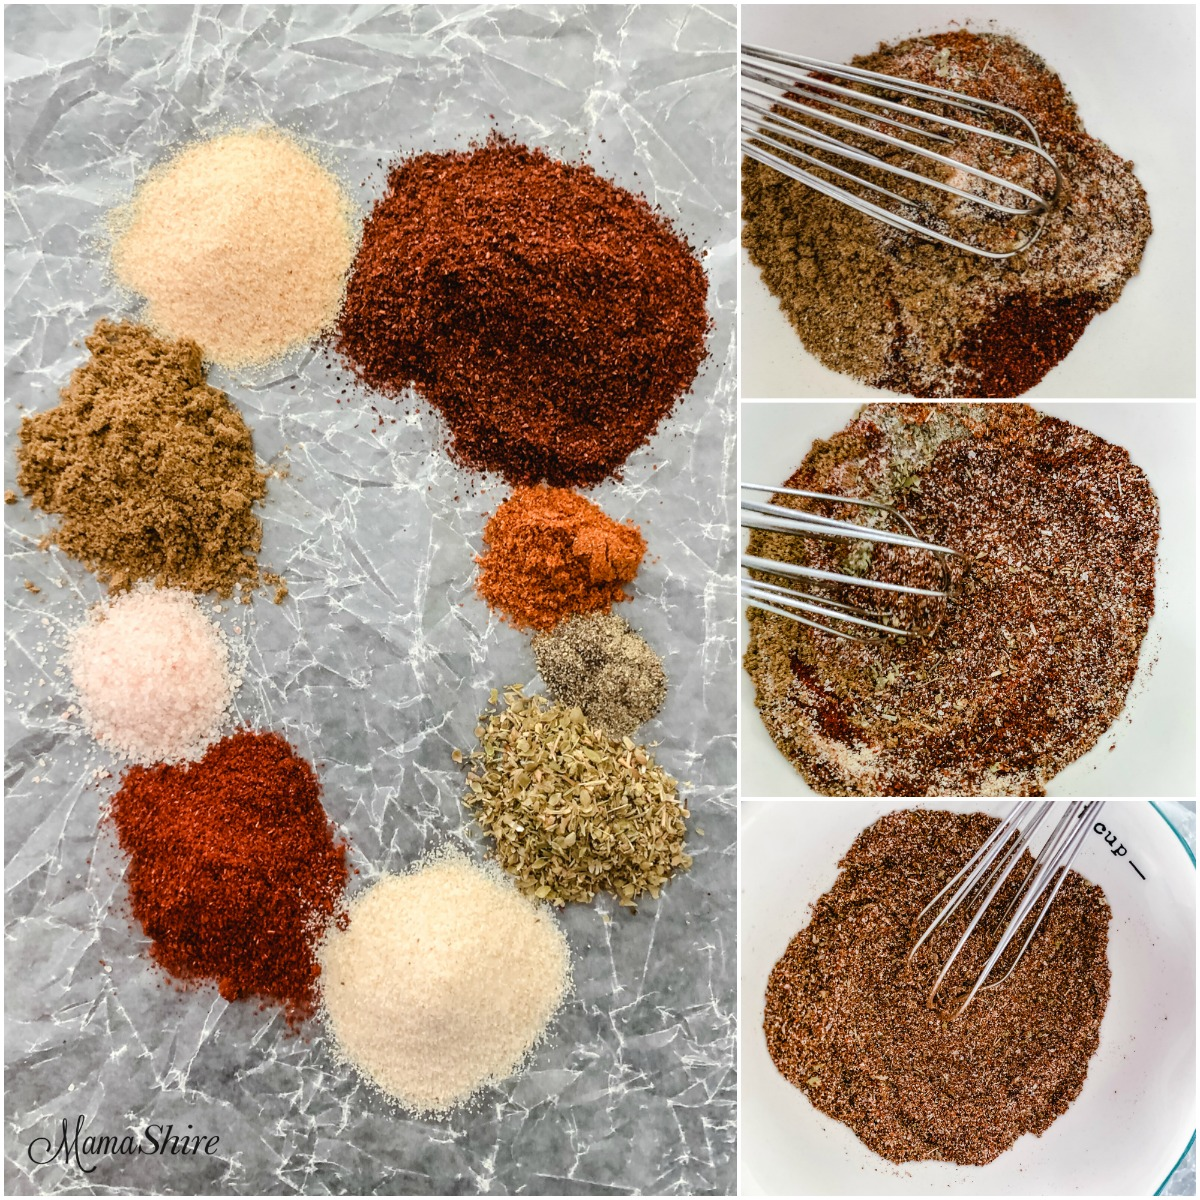 Homemade Taco Seasoning made with a variety of spices. Each spice shown and then mixed in a bowl.